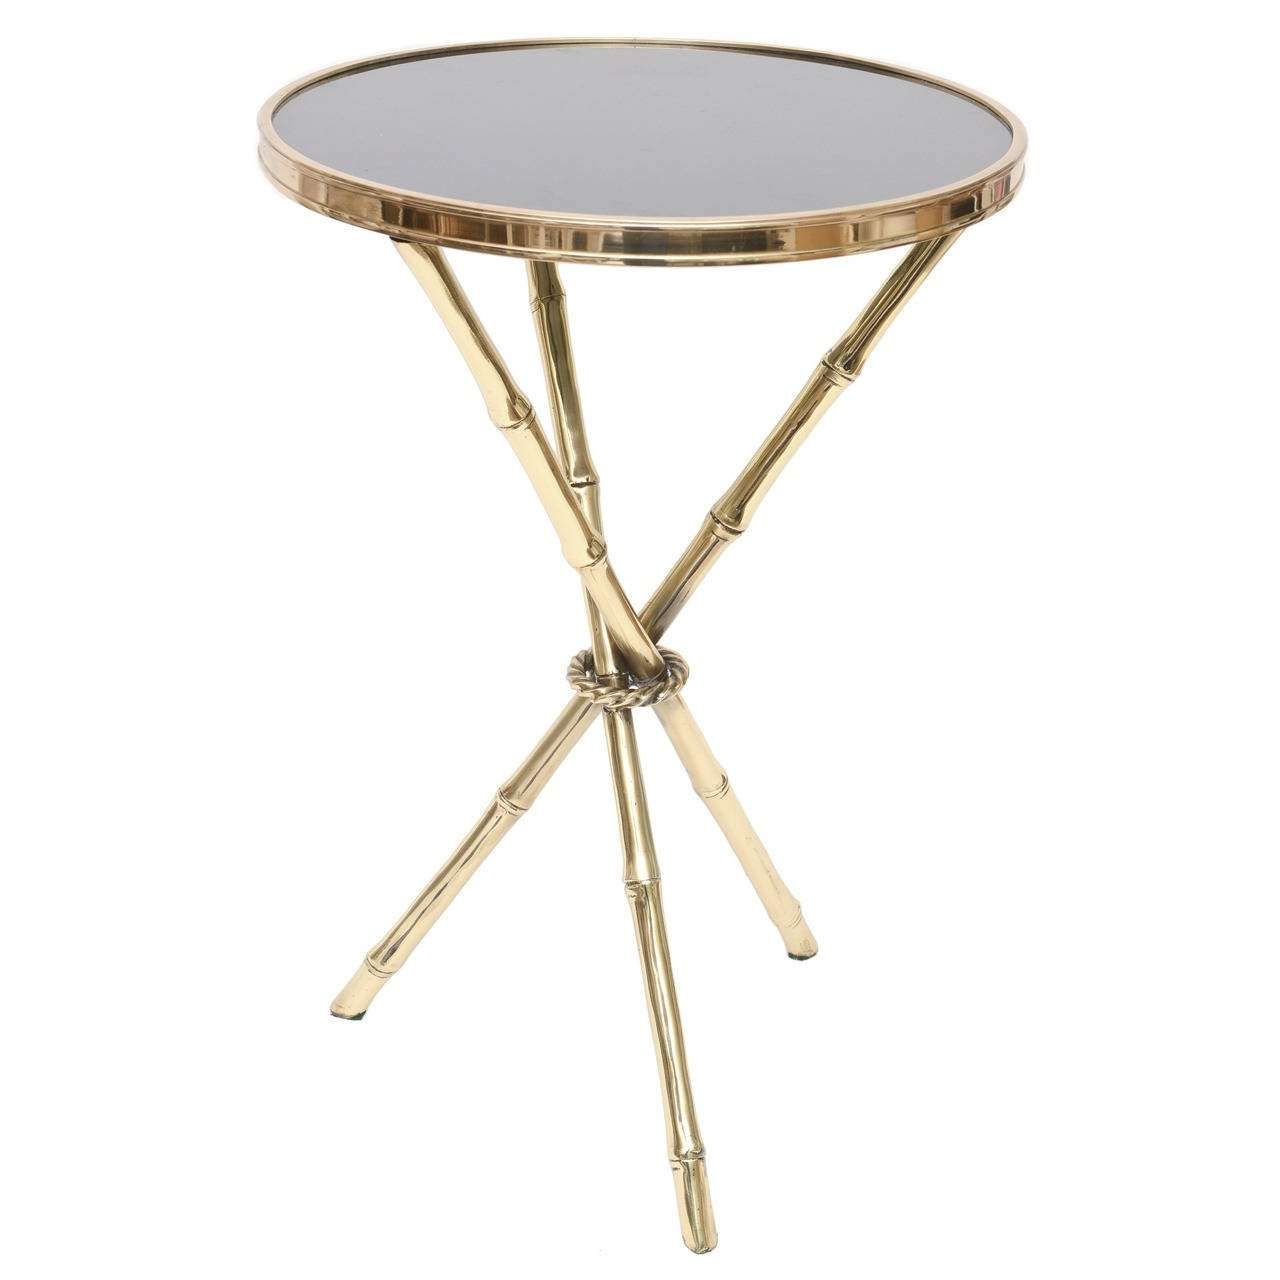 2017 Gold Bamboo Coffee Tables Pertaining To Chic Italian Polished Brass And Granite Faux Bamboo Tripod Side (View 19 of 20)